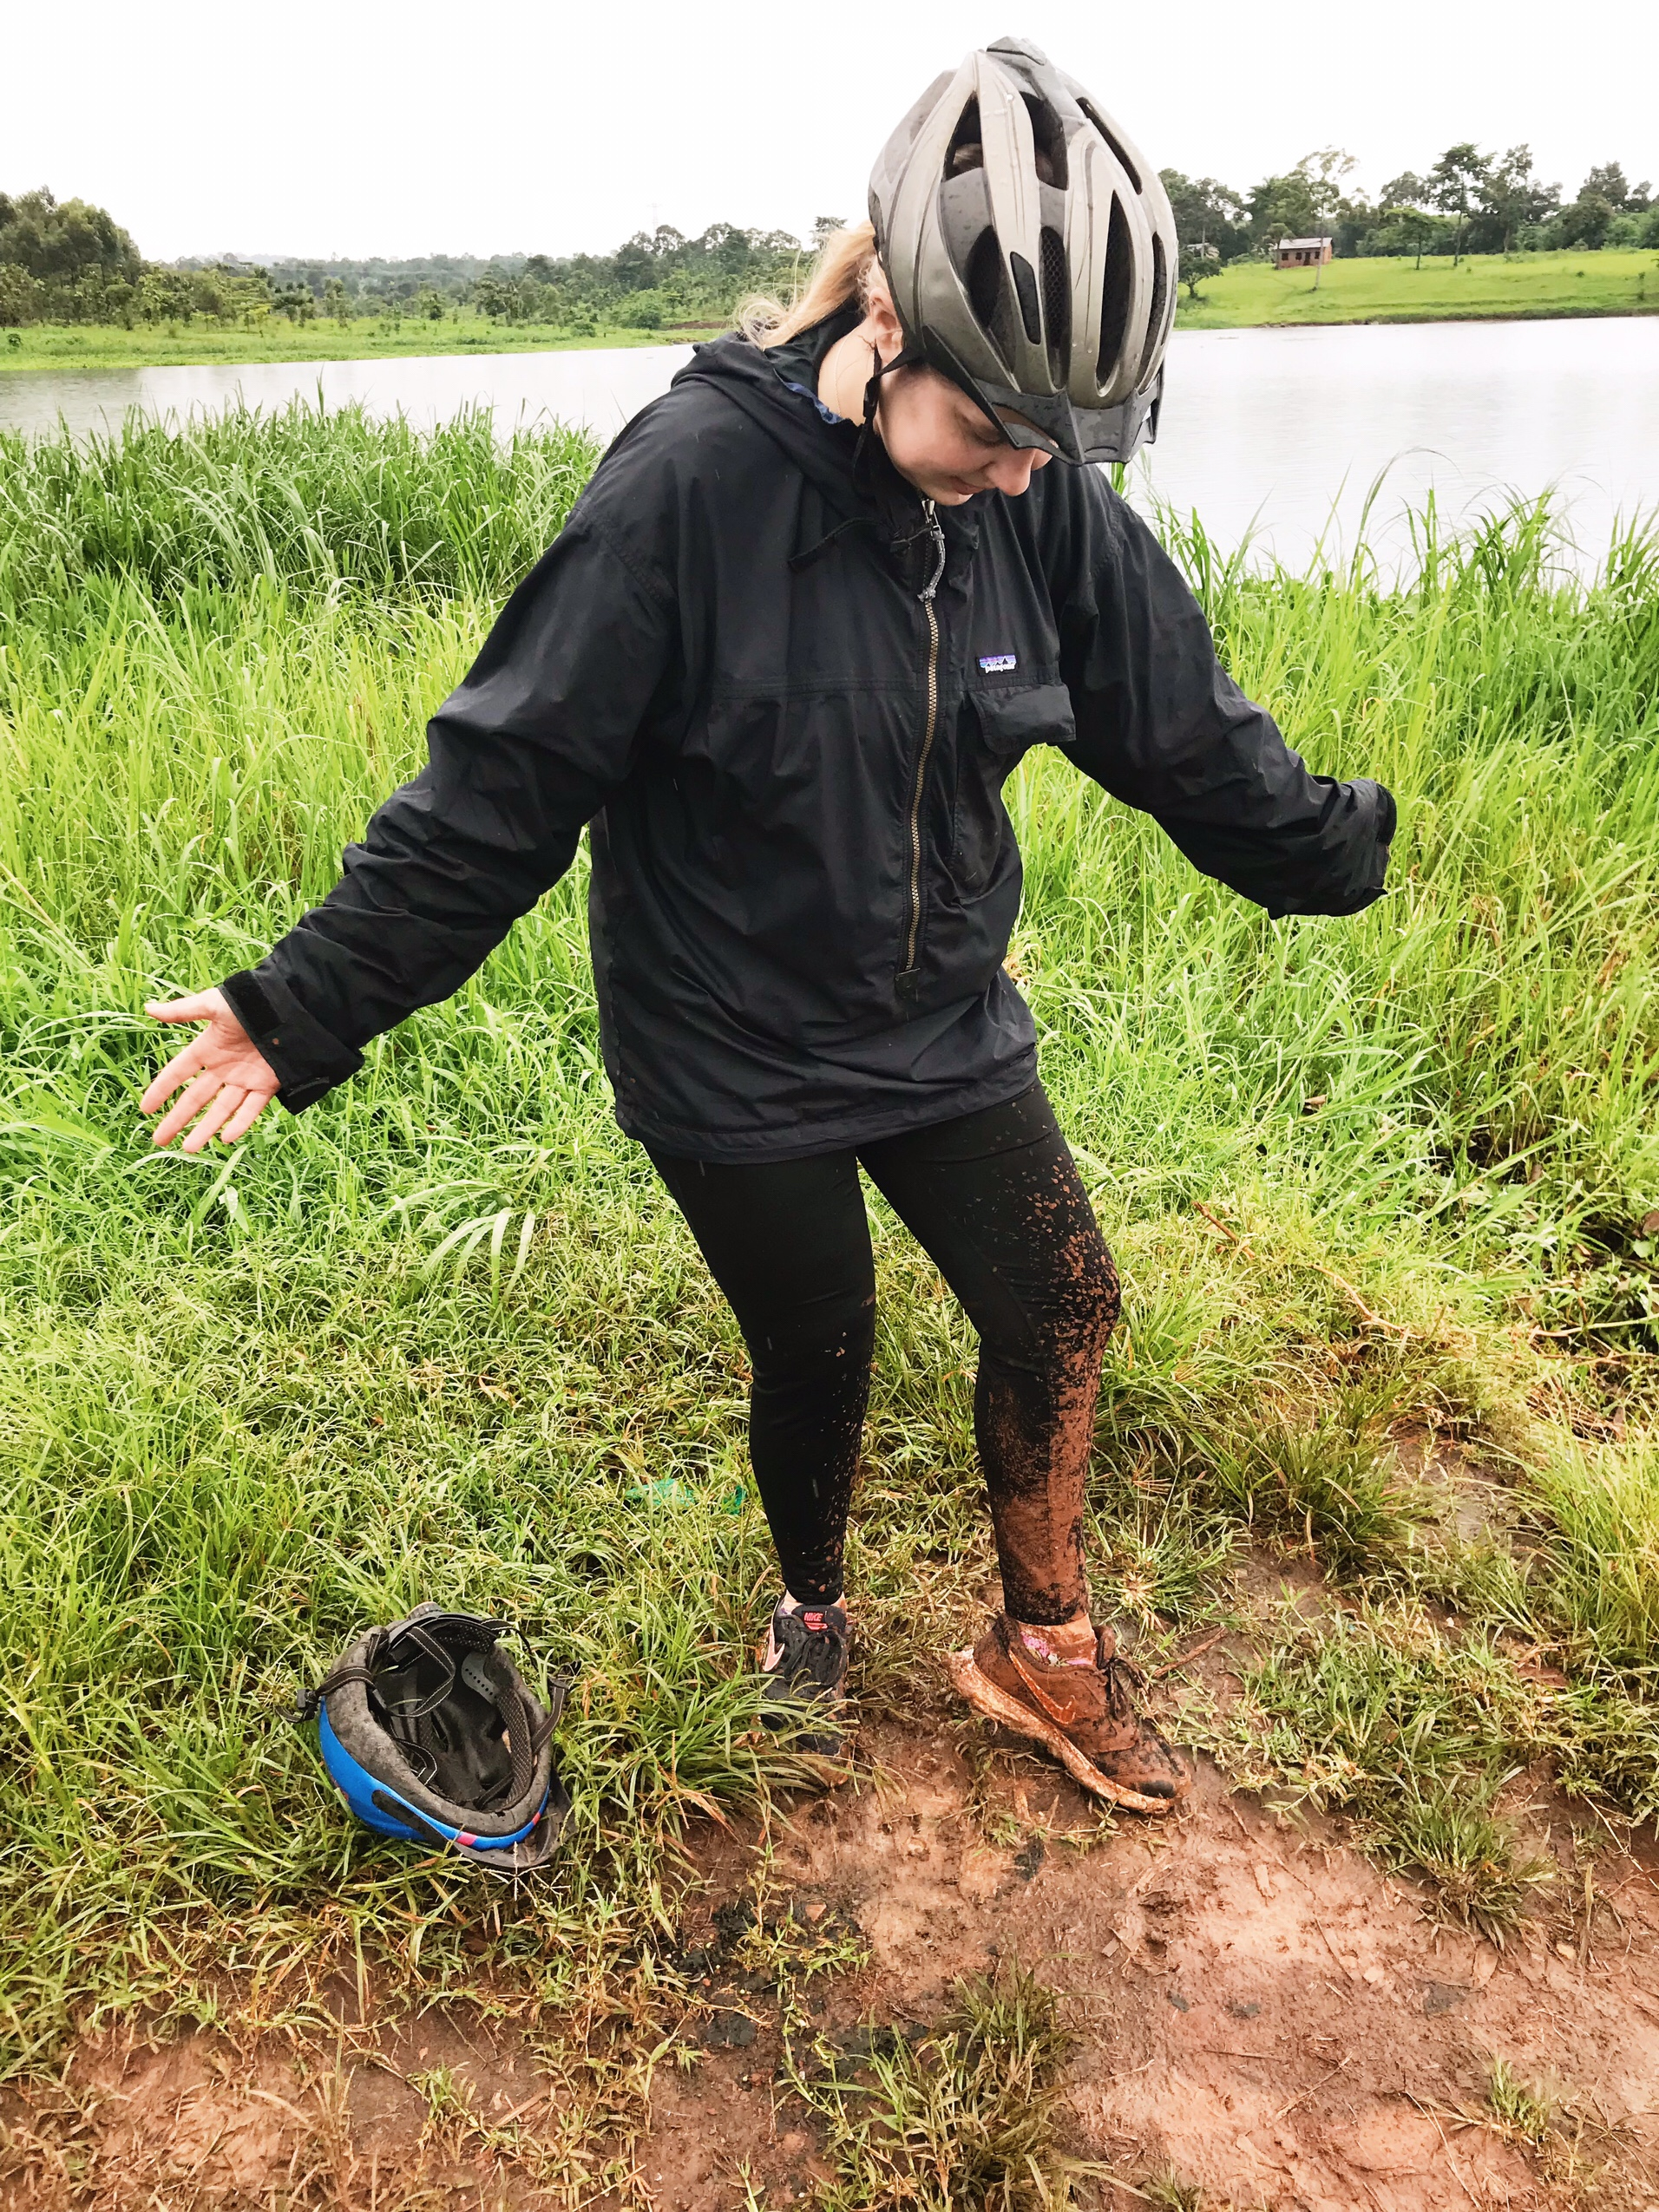 Image of muddy from bike riding in Jinja